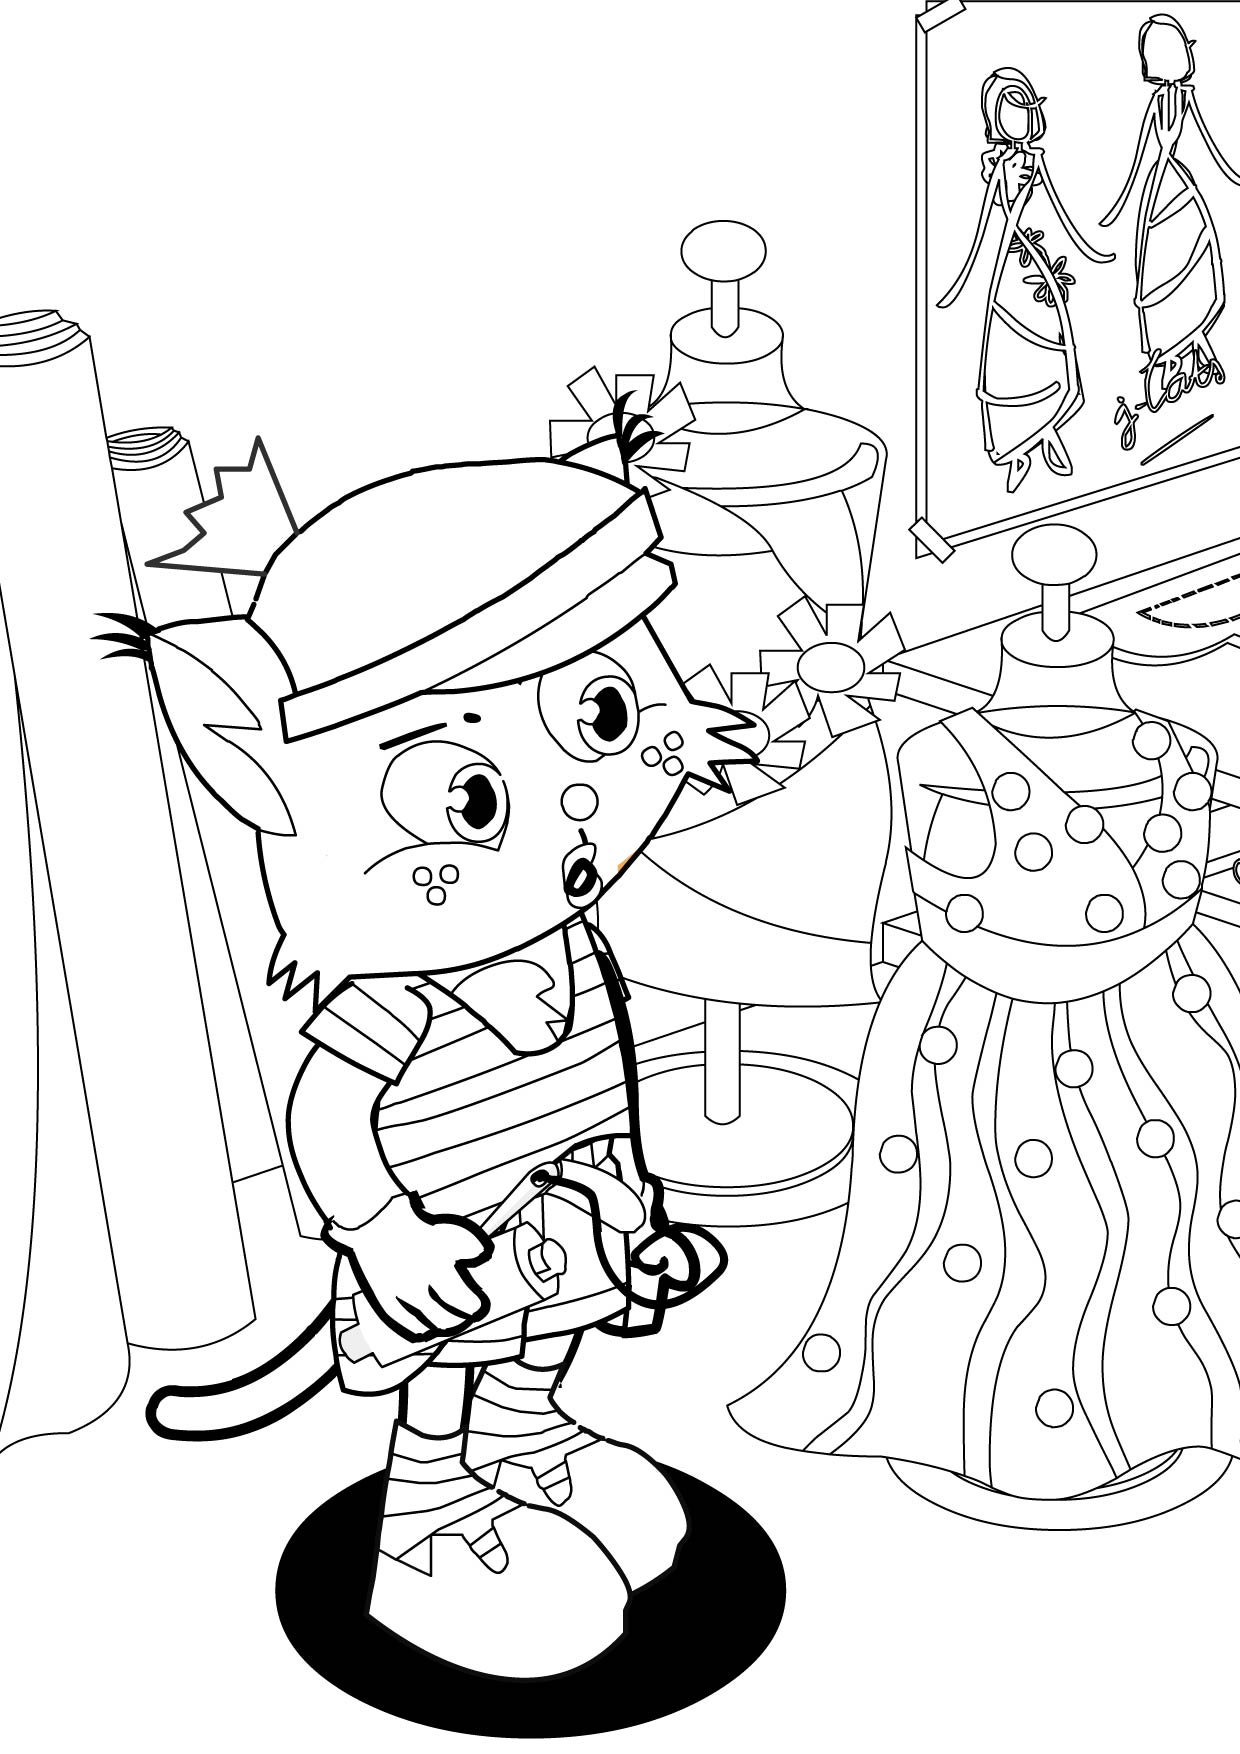 fashion-design coloring pages 14,printable,coloring pages